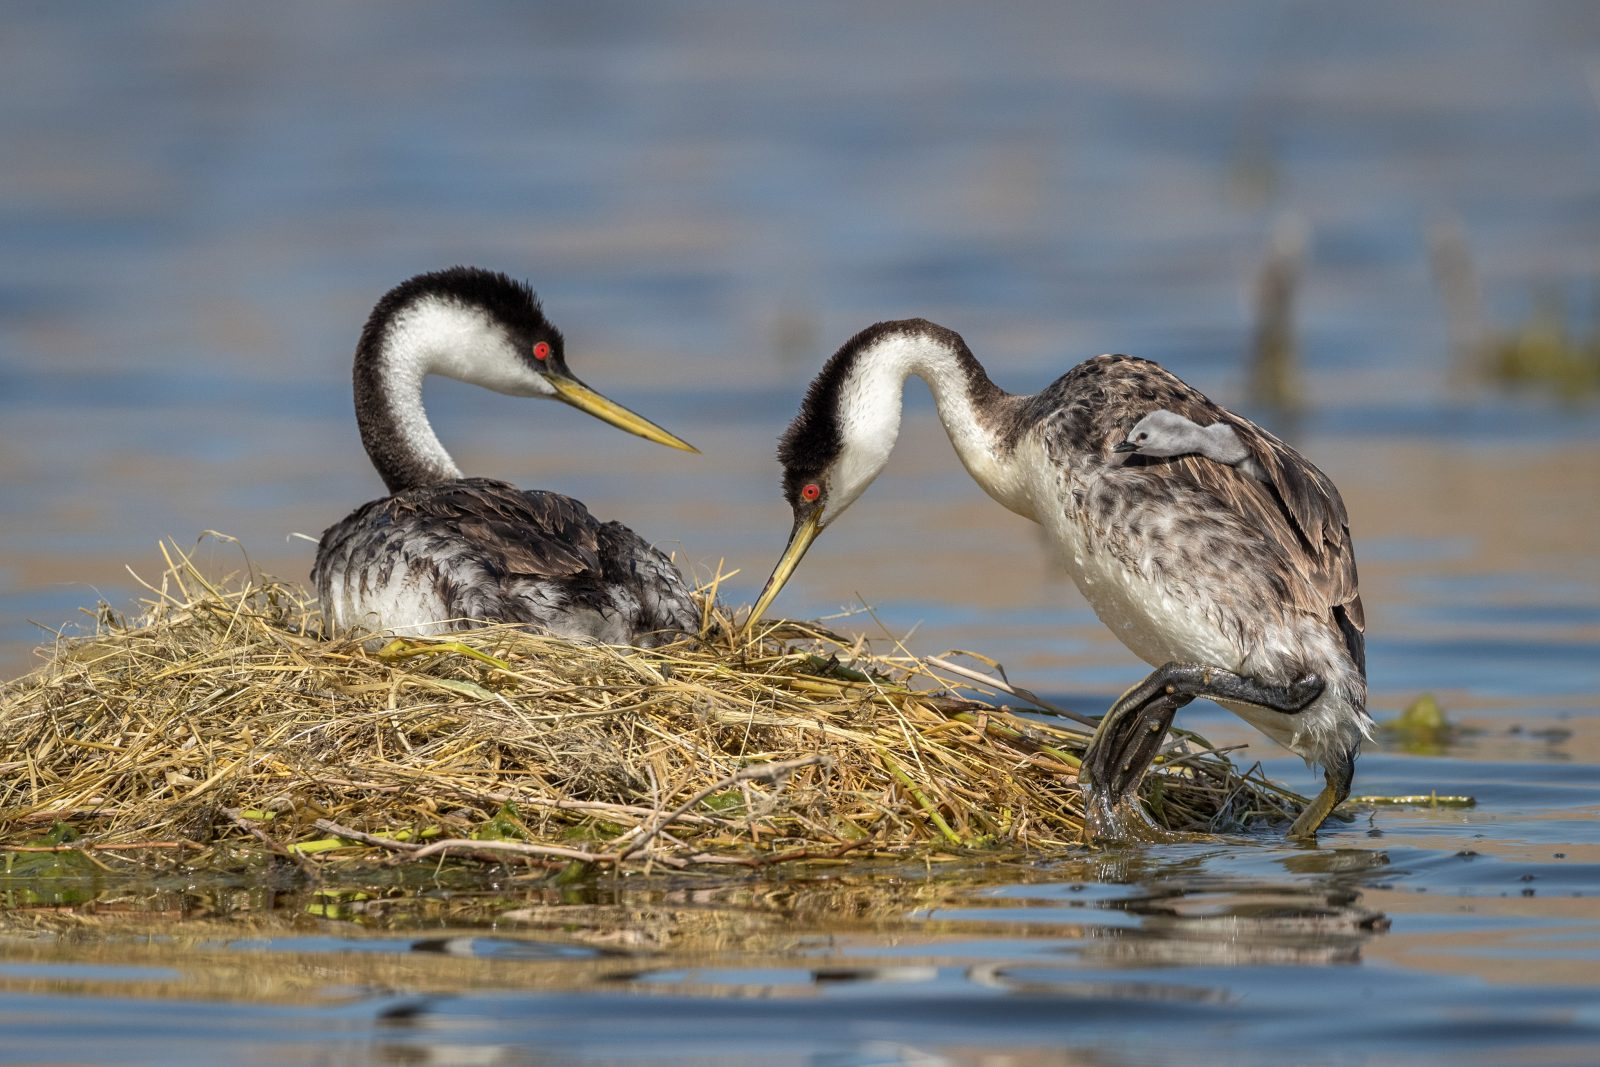 Western grebe father & chick return to nest